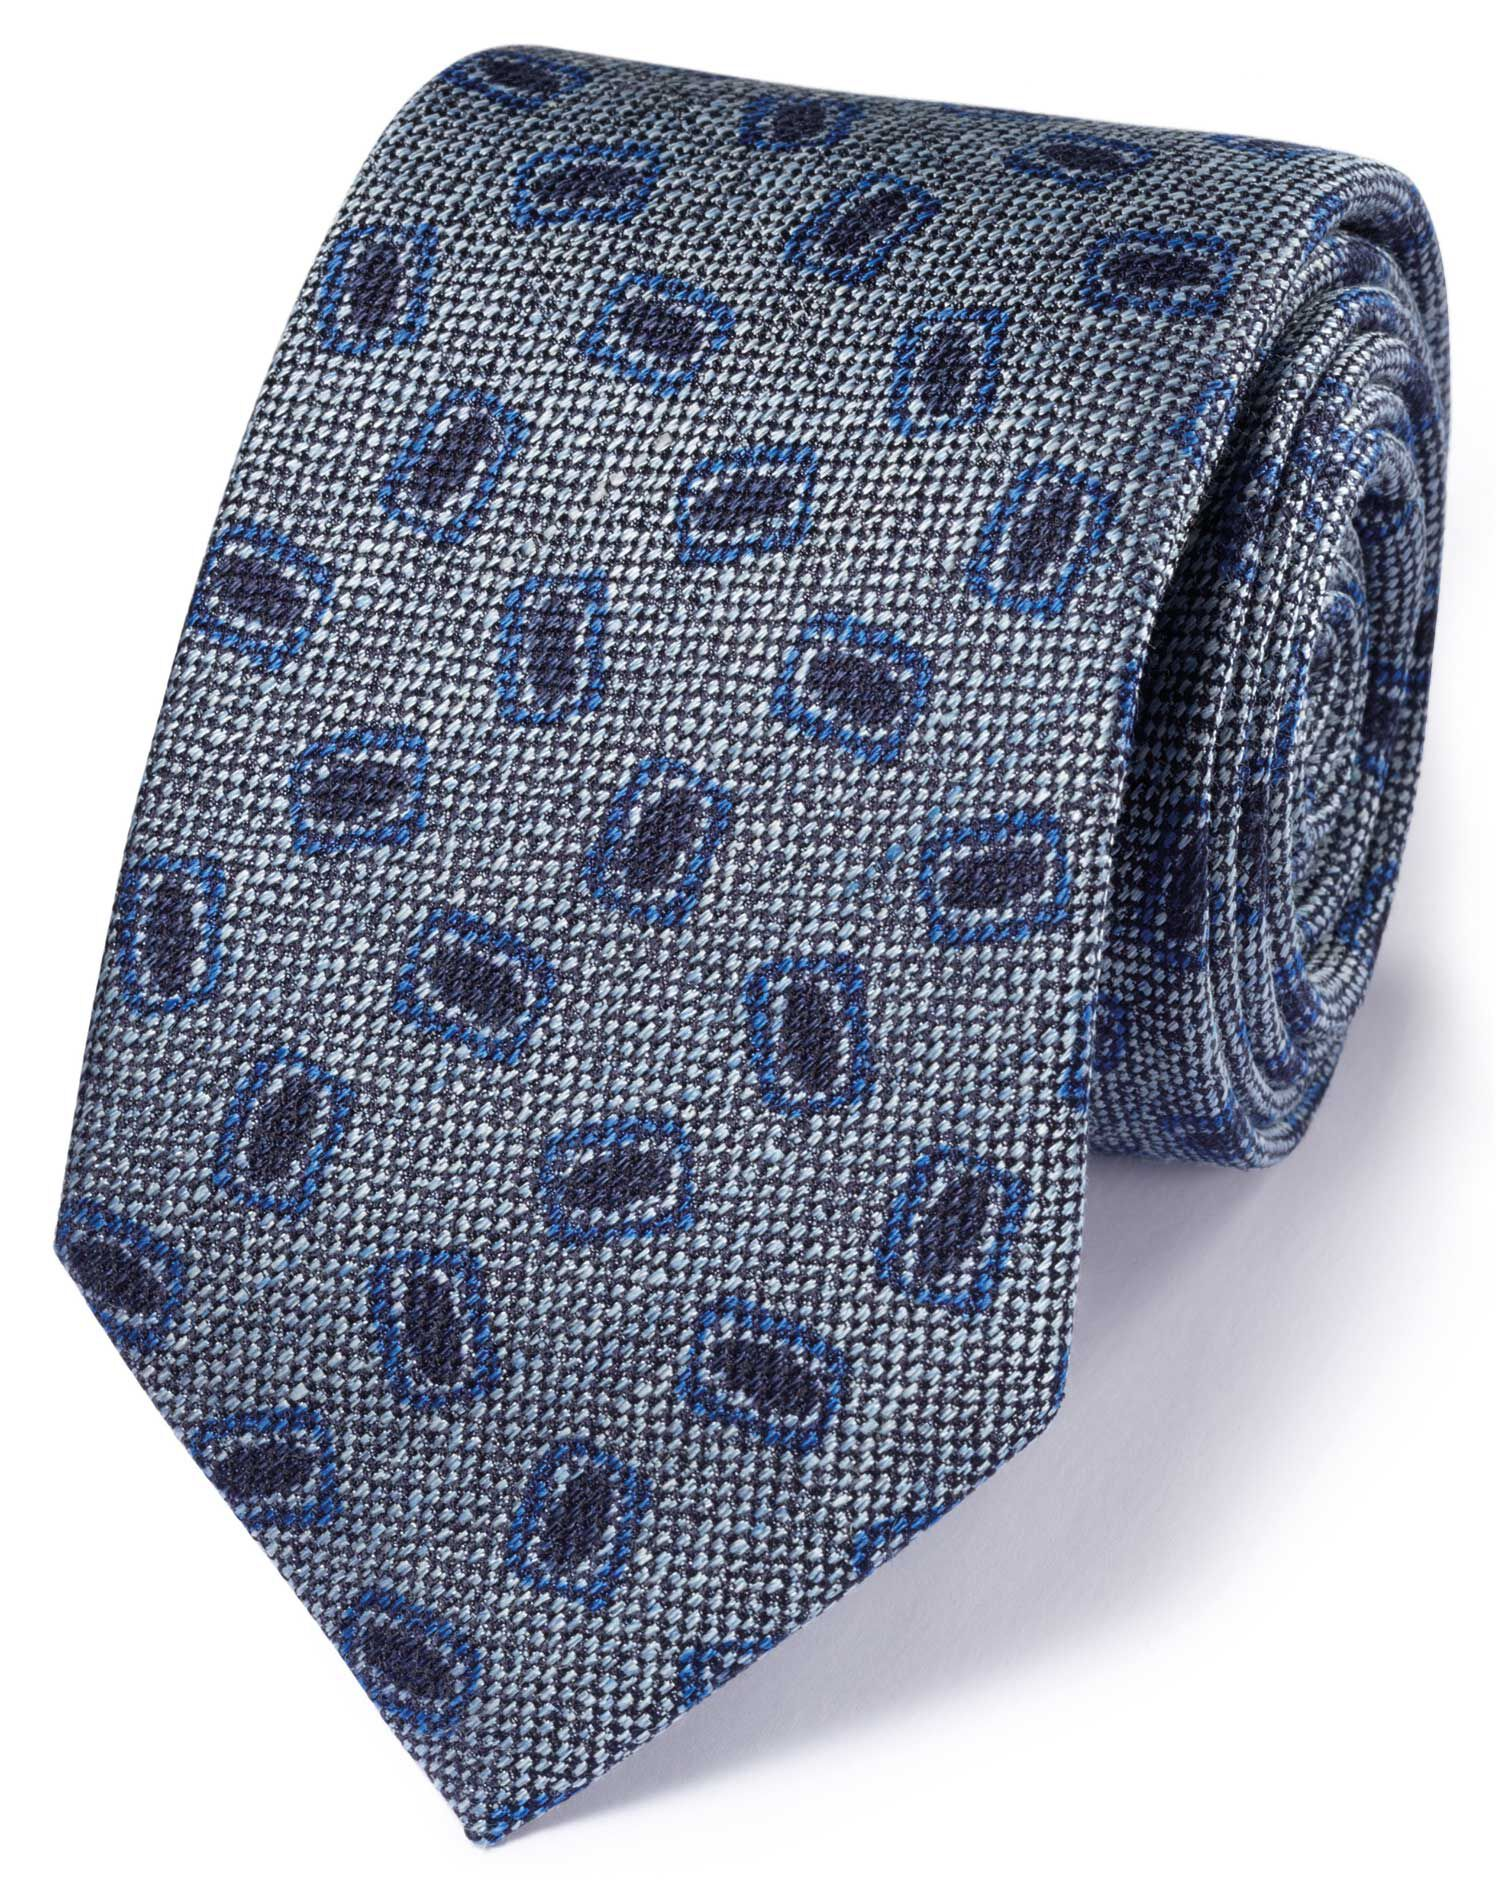 Chambray Linen Mix Italian Luxury Square Tie Size OSFA by Charles Tyrwhitt